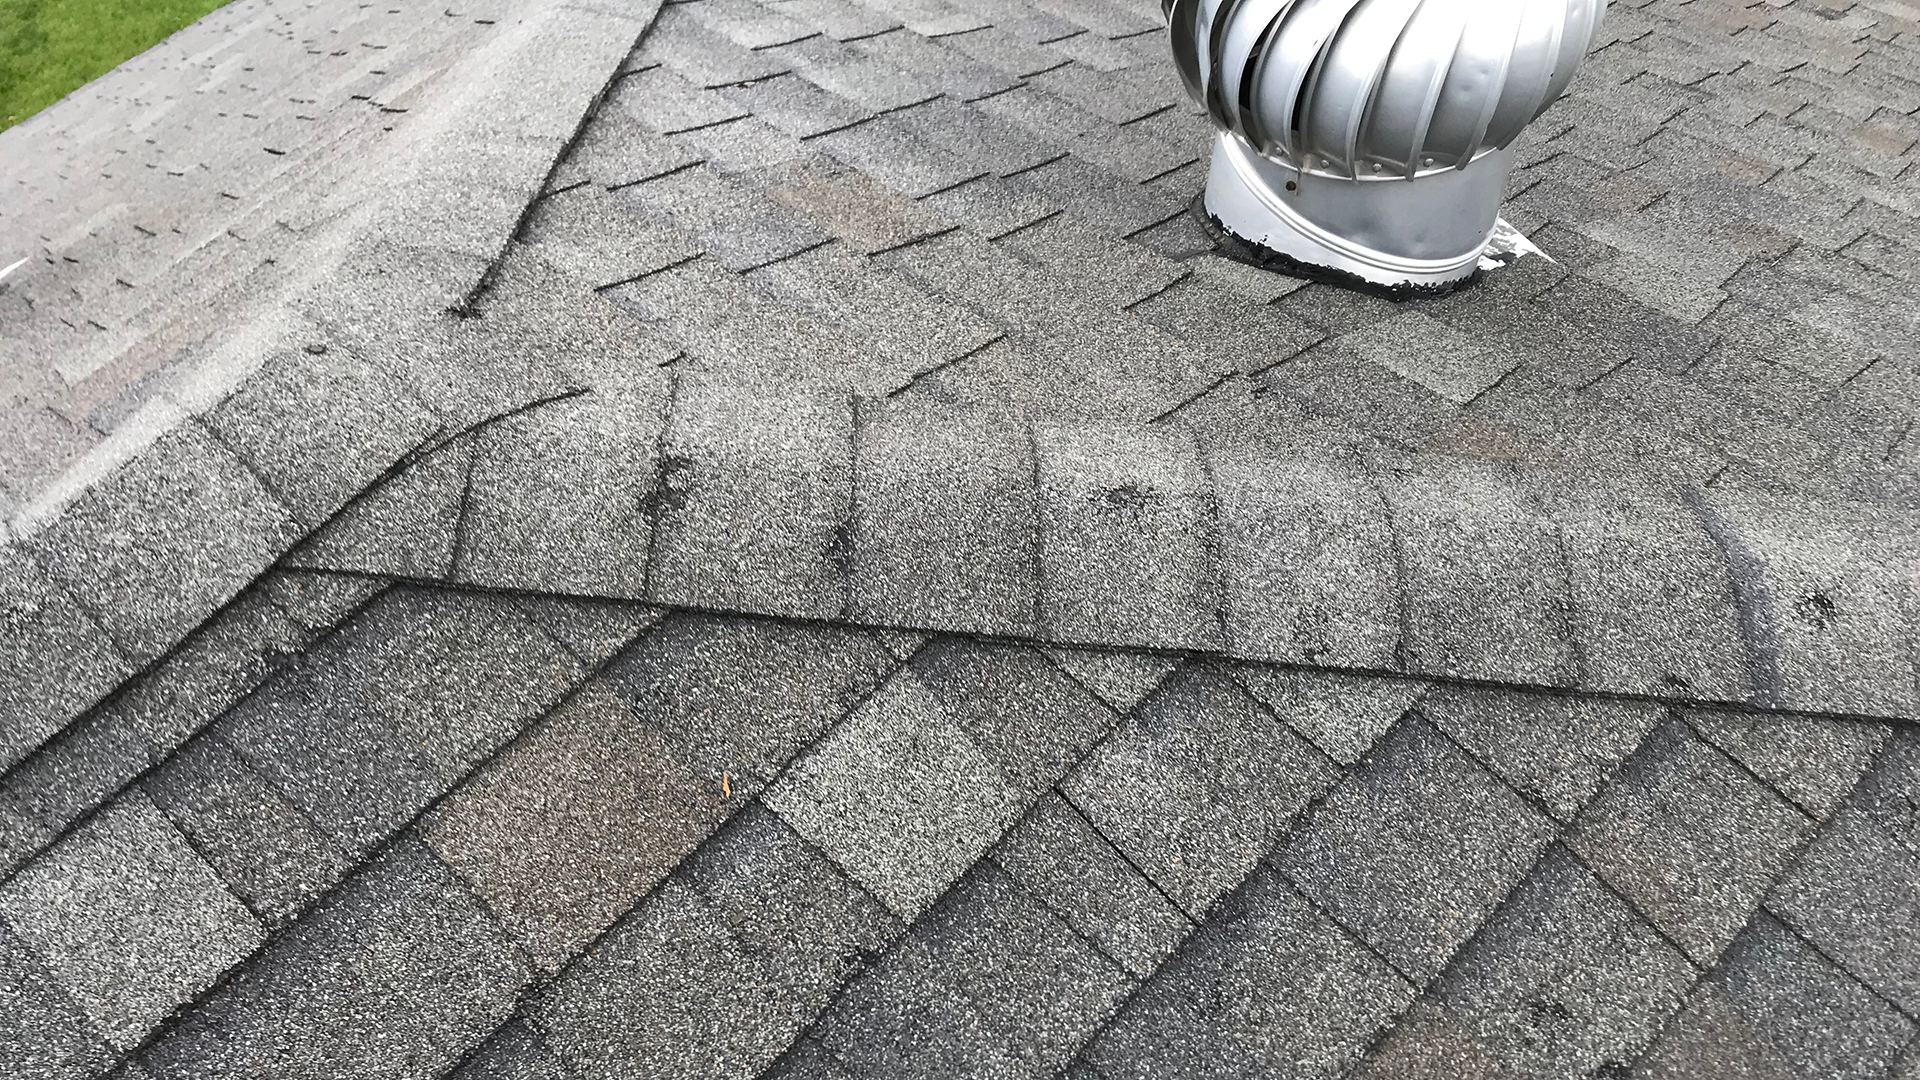 When Does My Roof Need to be Replaced vs Repaired?